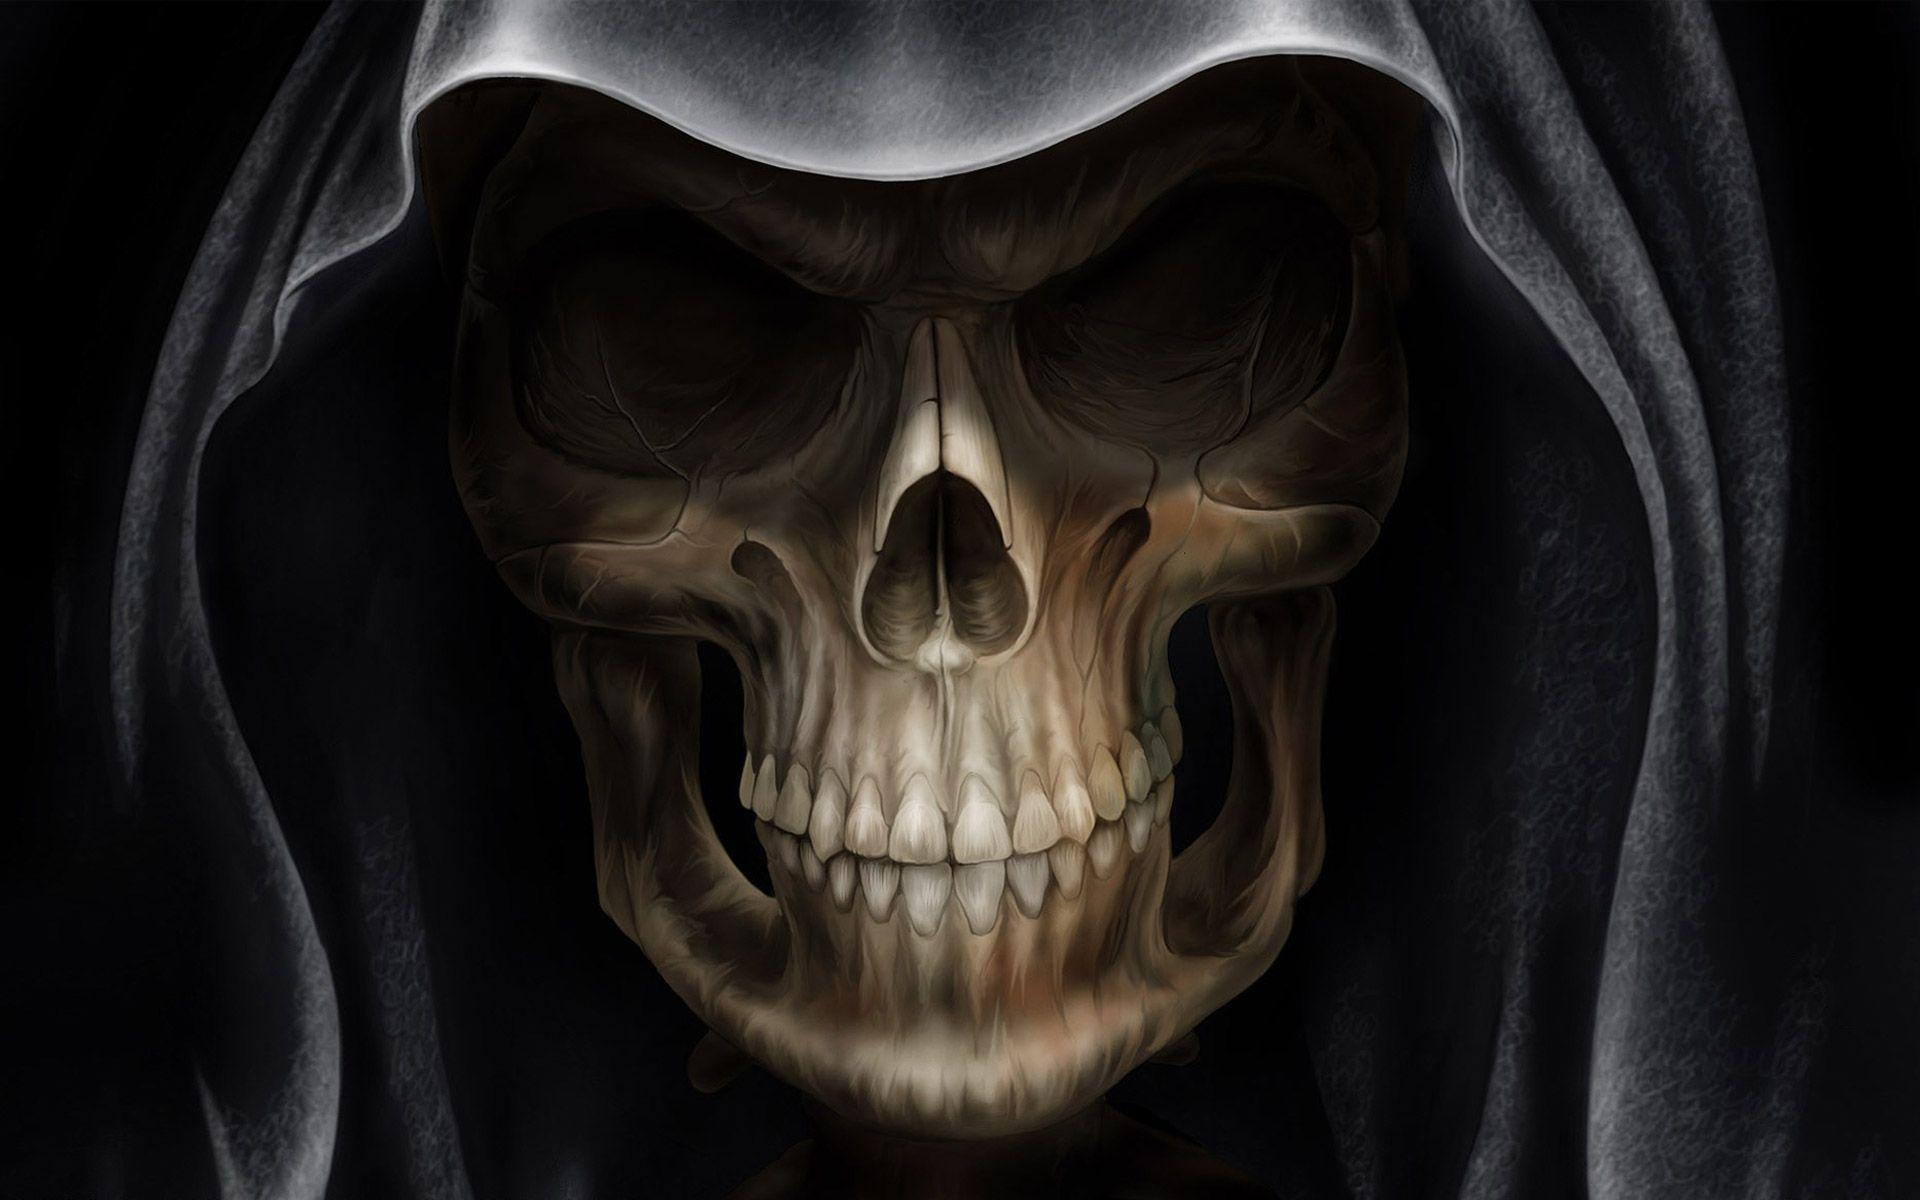 HD Skull Wallpapers   Wallpaper Cave Skull Wallpapers   Full HD wallpaper search   page 13